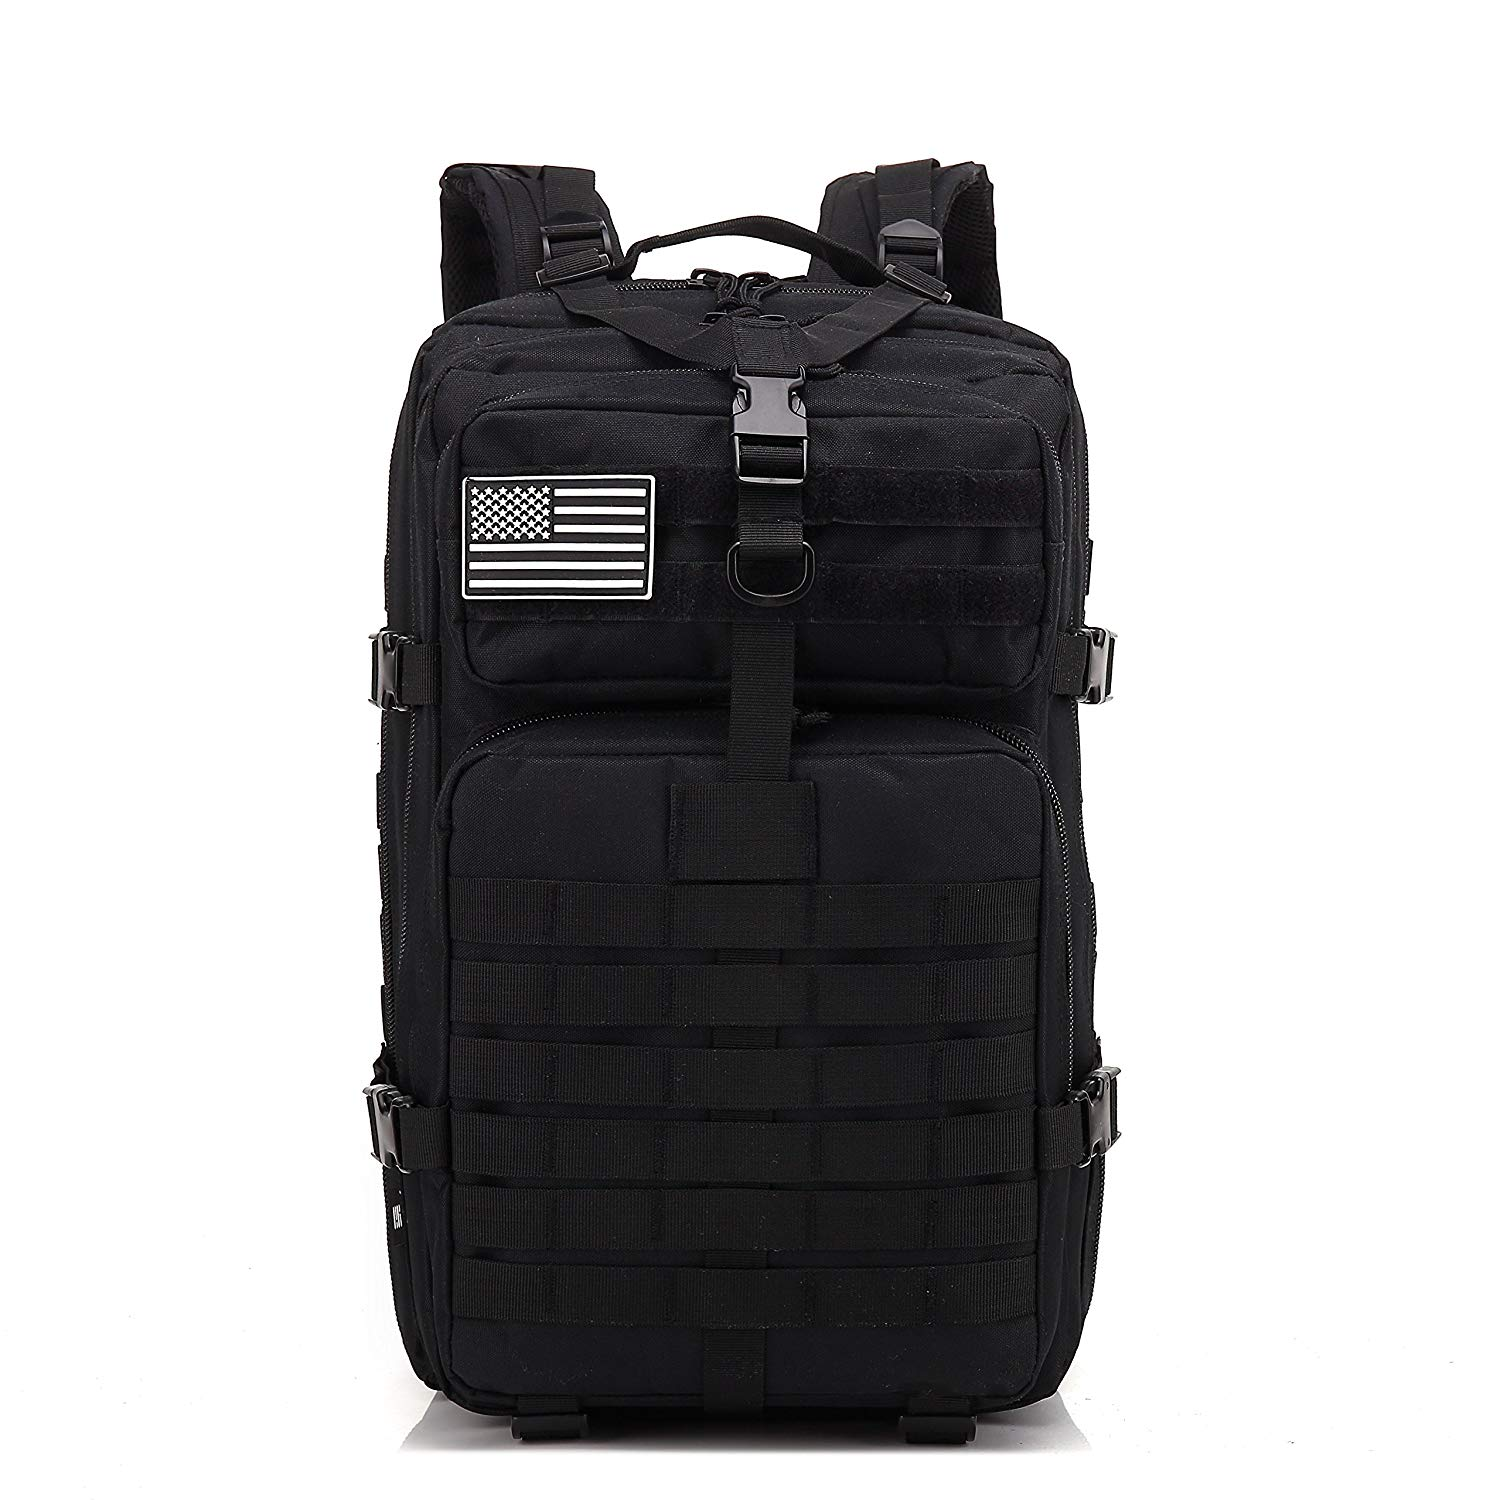 Get Quotations Angle Dolphin Military Tactical Backpack Small Assault Pack Army Molle Bug Out Bag Backpacks